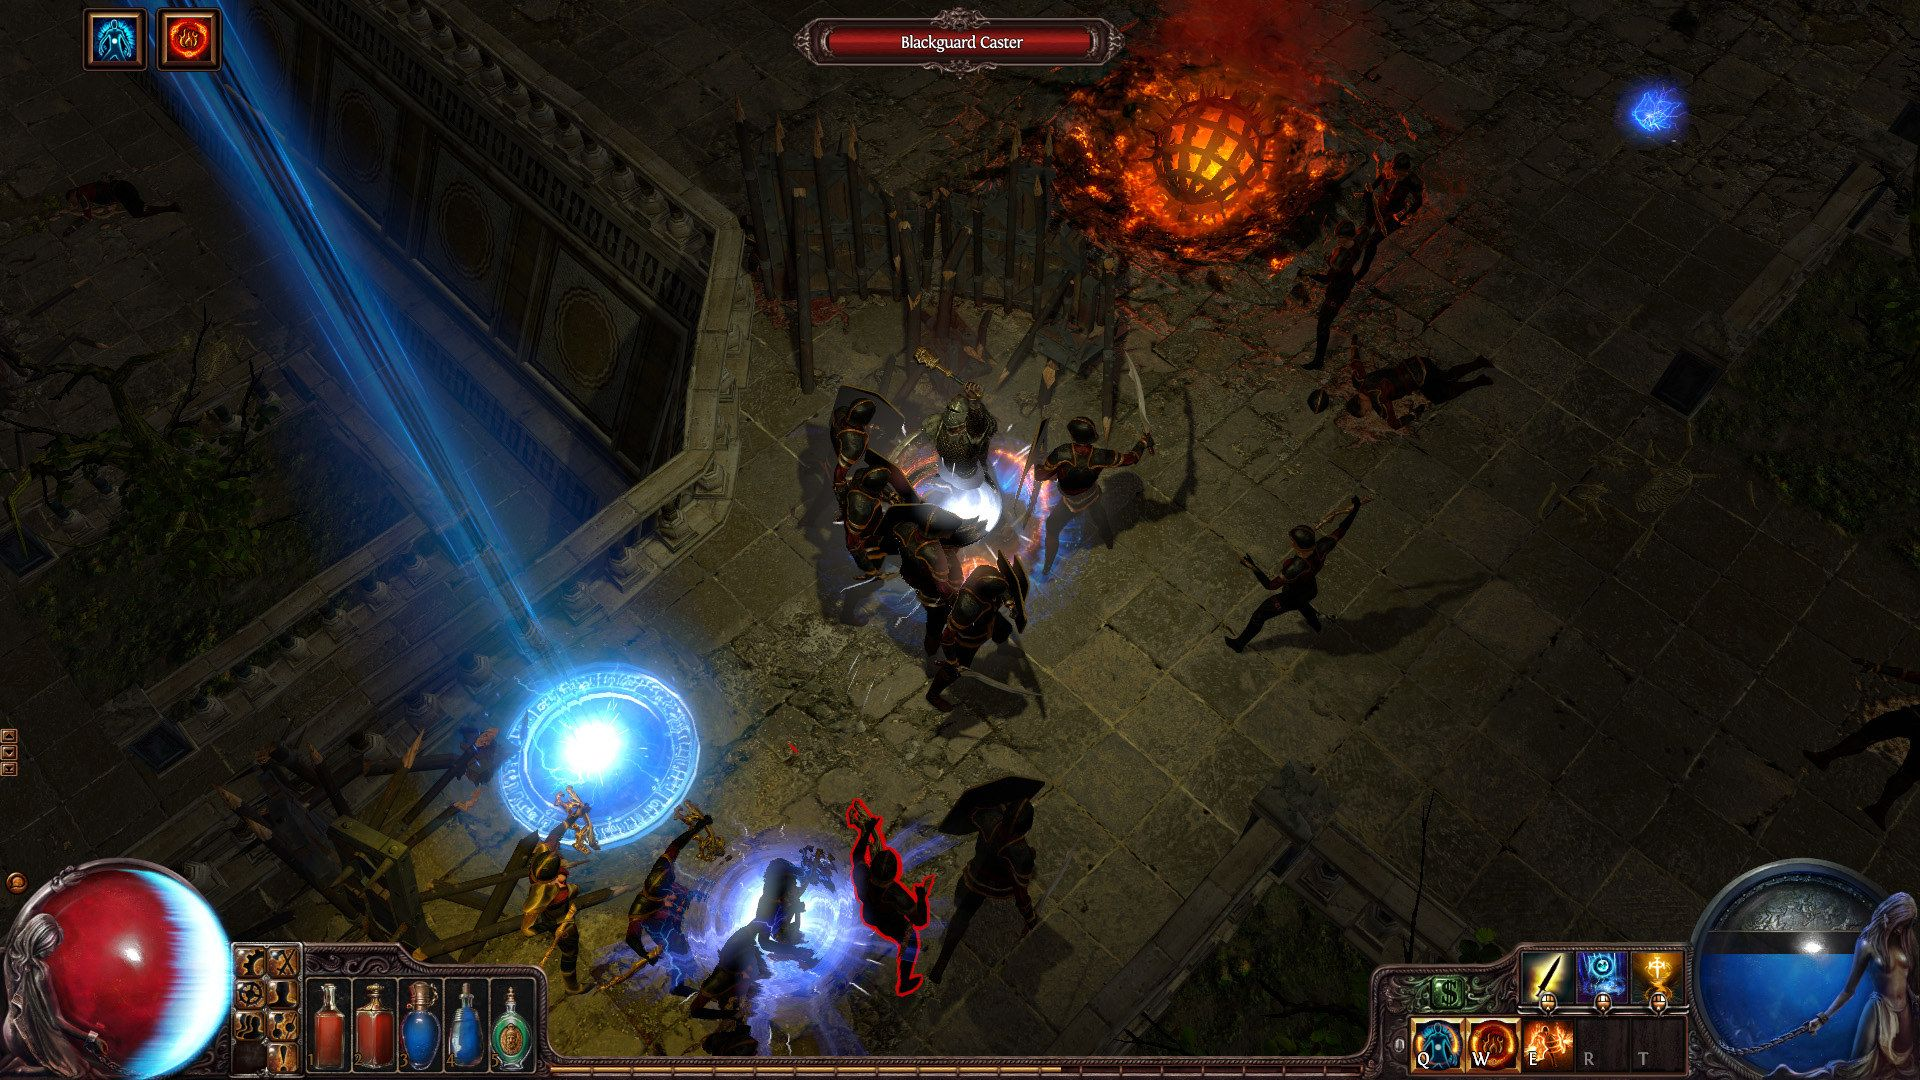 Path of Exile isometric hacknslash MMO. Quite